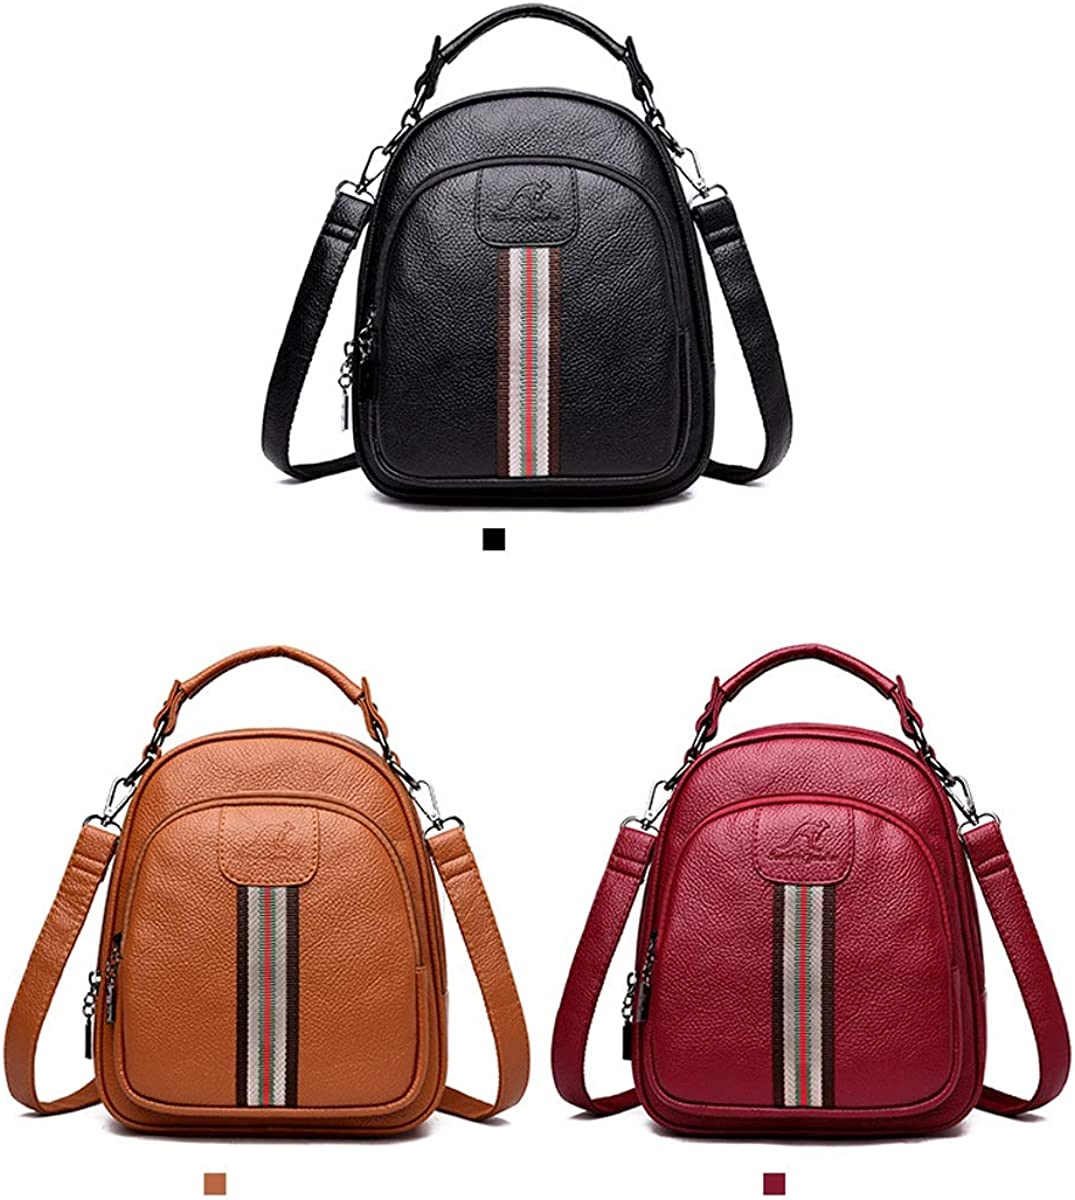 Fashion Mini for Women /& Men Black//Brown//red ZHICHUANG Girls Multipurpose Backpack for Everyday Travel//Outdoor//Travel//School//Work//Fashion//Leisure PU Leather